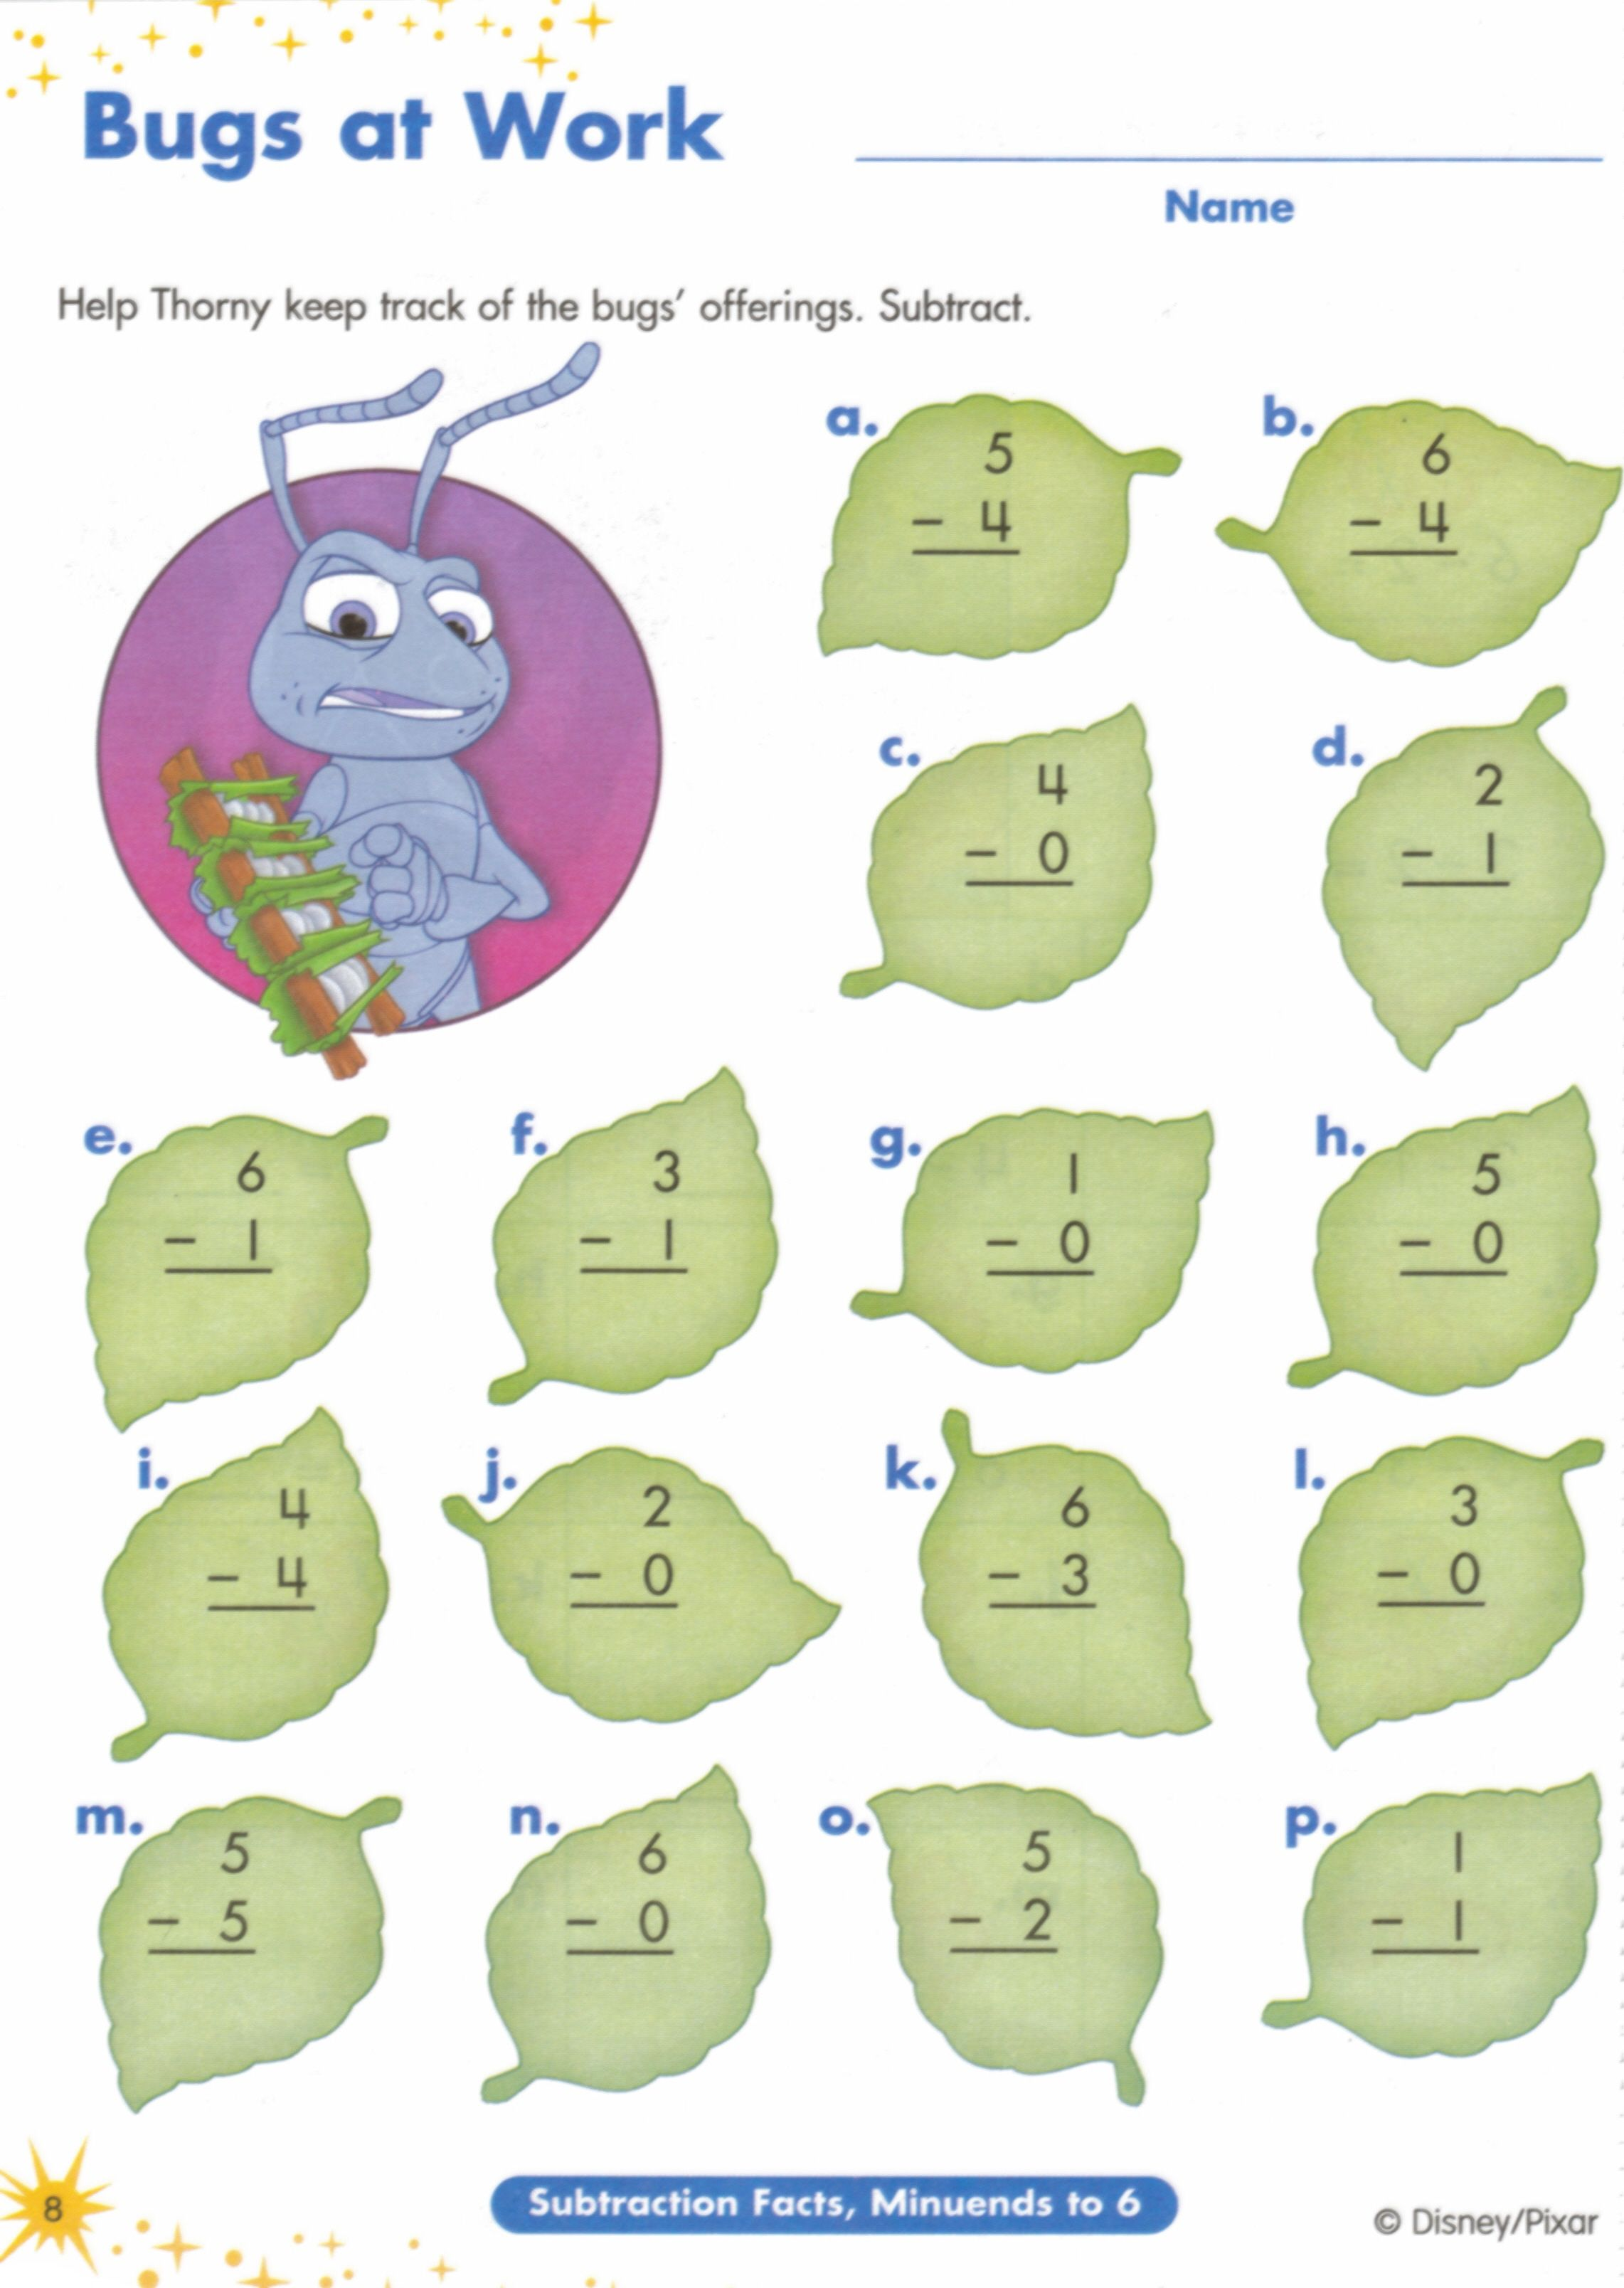 Proatmealus  Unique  Images About Worksheets On Pinterest  Fun Facts For Kids  With Engaging  Images About Worksheets On Pinterest  Fun Facts For Kids Earth Day Worksheets And Jungles With Delectable Simple Past Worksheets Esl Also Money Math Worksheets Canadian In Addition Worksheets For Pythagorean Theorem And Maths Worksheets For  Year Olds As Well As Excel Formula Worksheet Additionally Numbers To  Worksheet From Pinterestcom With Proatmealus  Engaging  Images About Worksheets On Pinterest  Fun Facts For Kids  With Delectable  Images About Worksheets On Pinterest  Fun Facts For Kids Earth Day Worksheets And Jungles And Unique Simple Past Worksheets Esl Also Money Math Worksheets Canadian In Addition Worksheets For Pythagorean Theorem From Pinterestcom